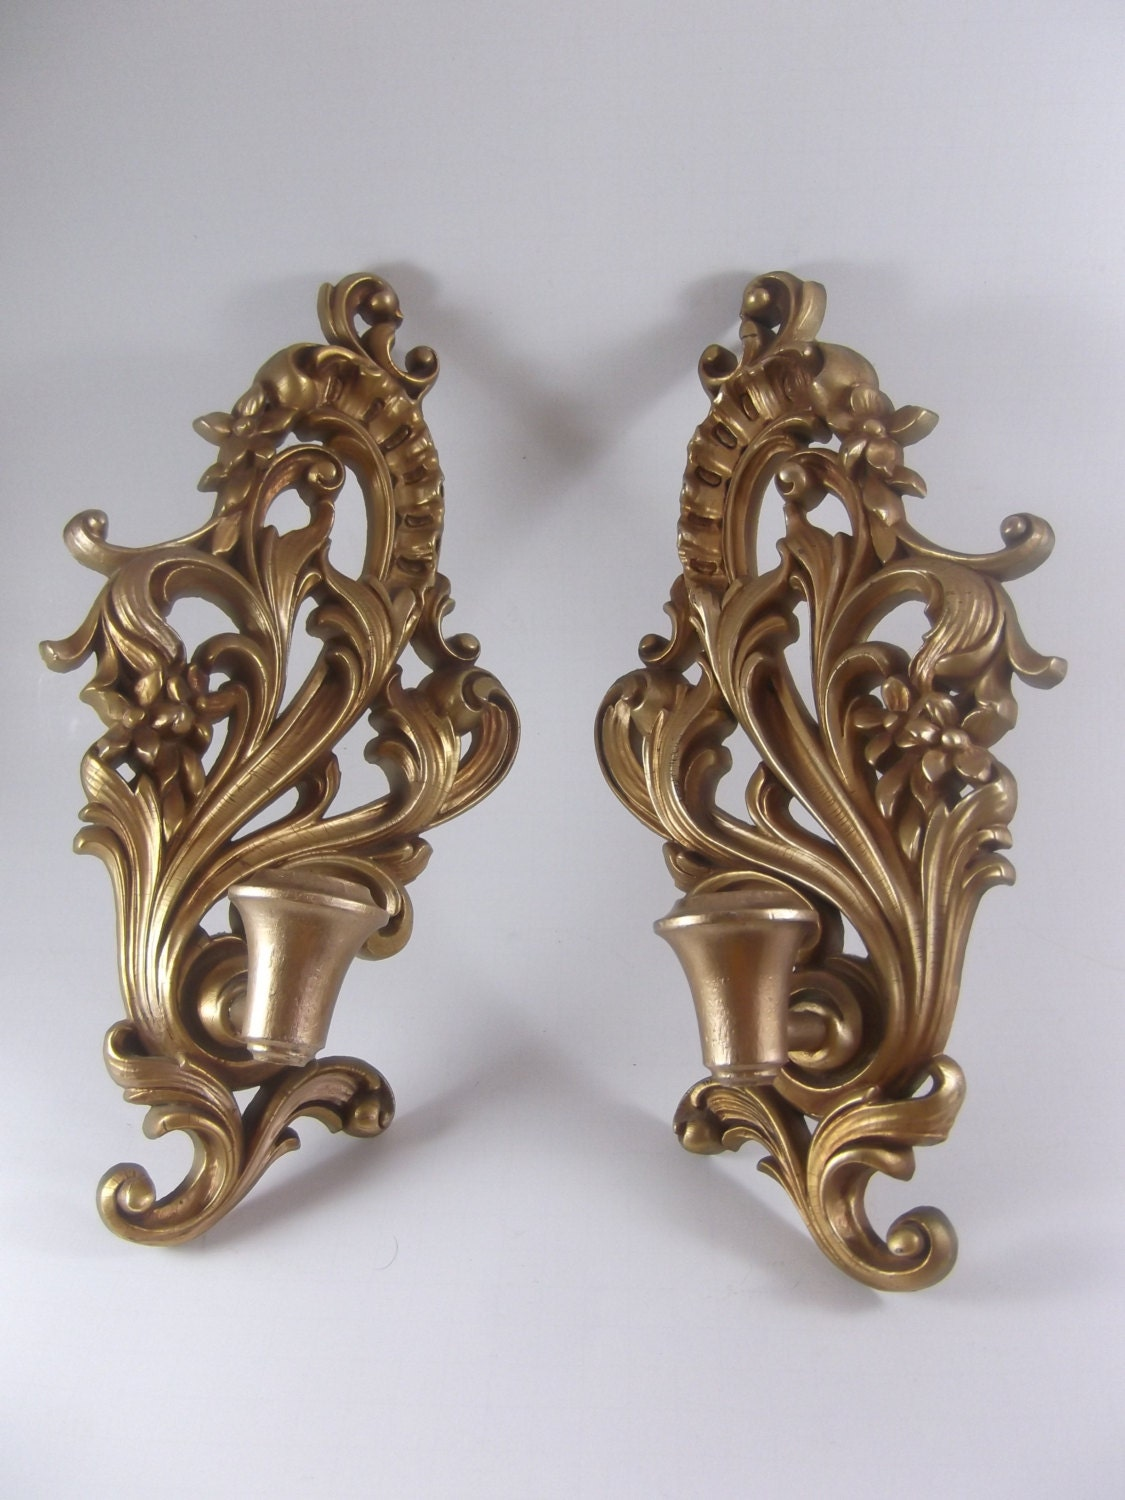 Candle Wall Sconces Vintage : Wood Candle Sconce Pair Vintage Wall Mount Gilt by acornabbey